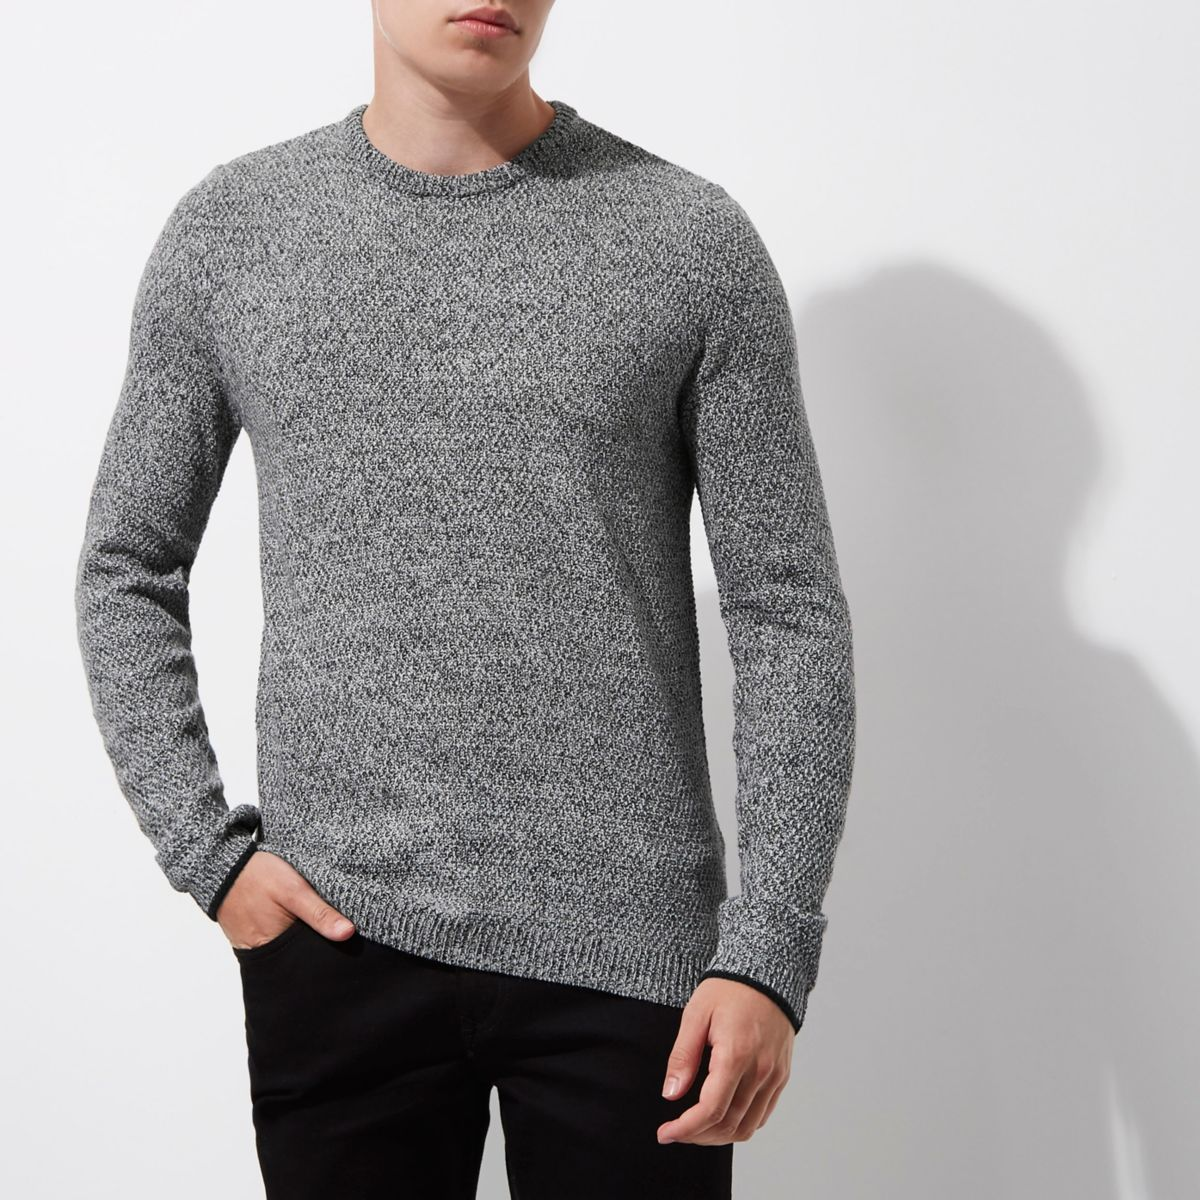 Buy Jumpers & cardigans from the Sale department at Debenhams. You'll find the widest range of Jumpers & cardigans products online and delivered to your door. Shop today!